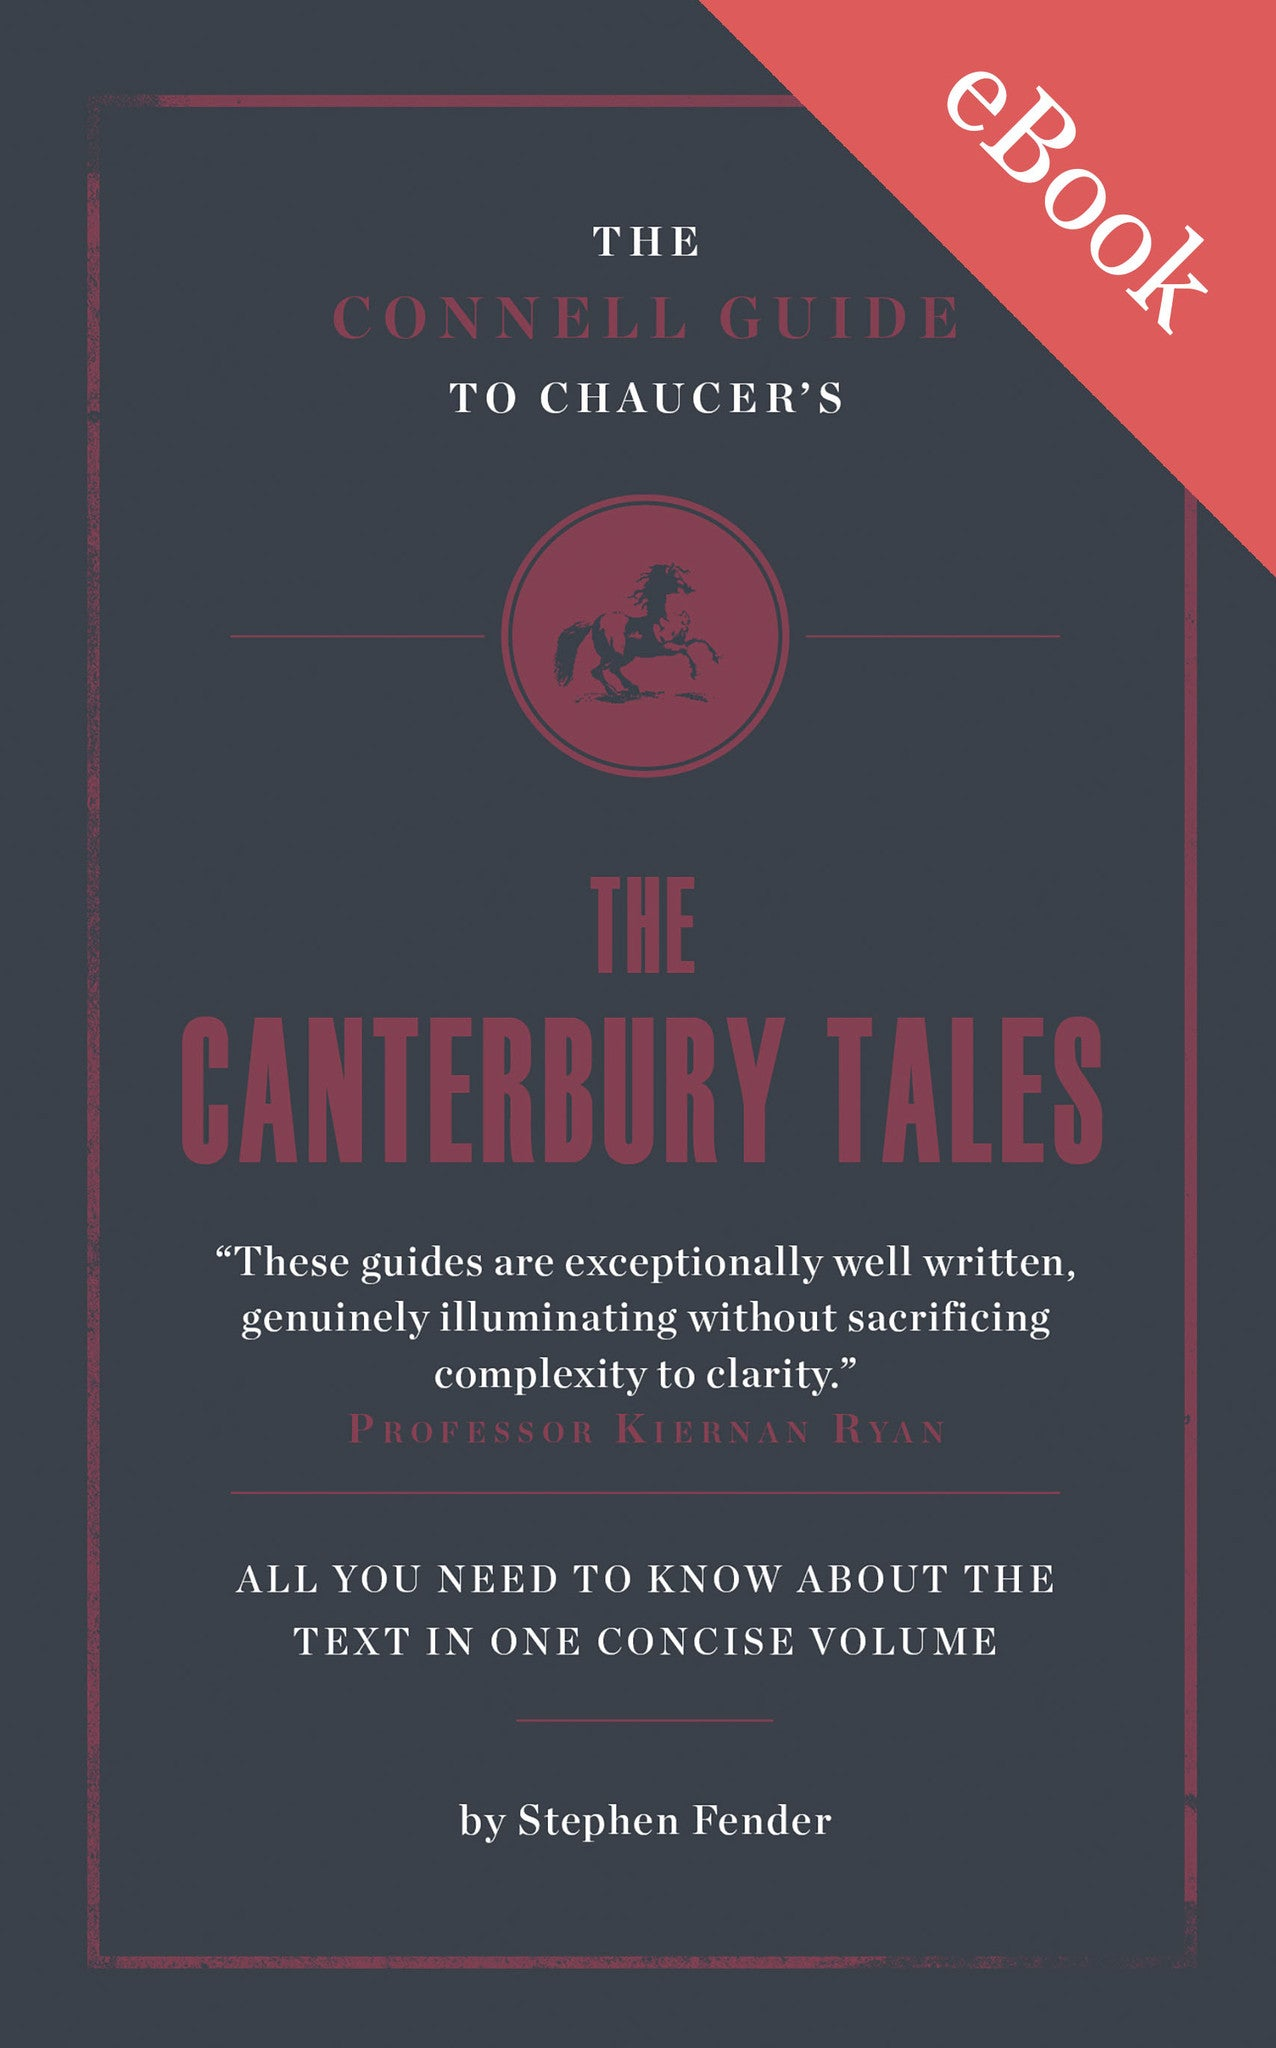 an analysis of the canterbury tales collection of stories by geoffrey chaucer Free study guide for the canterbury tales by geoffrey chaucer  study guide / analysis for the canterbury tales the  around with the collection.